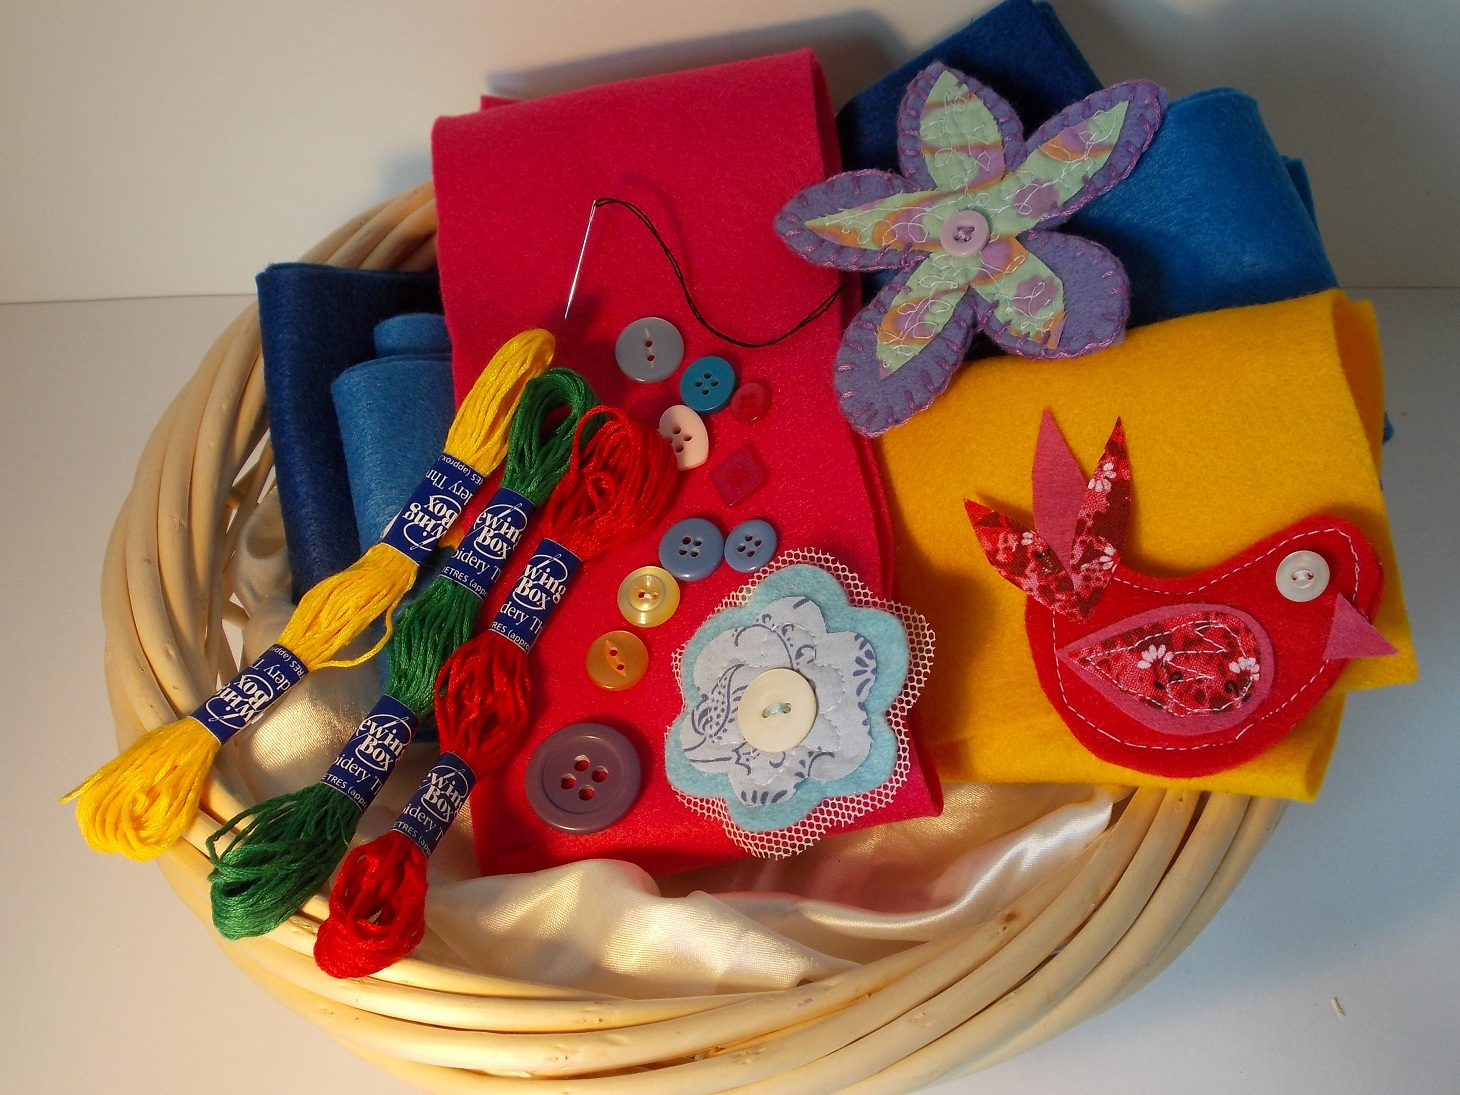 craft class  Up-cycled Uplifters, Felt Brooches or Mosaic Madness and more by Rachel Shilston - Inspiring Creativity